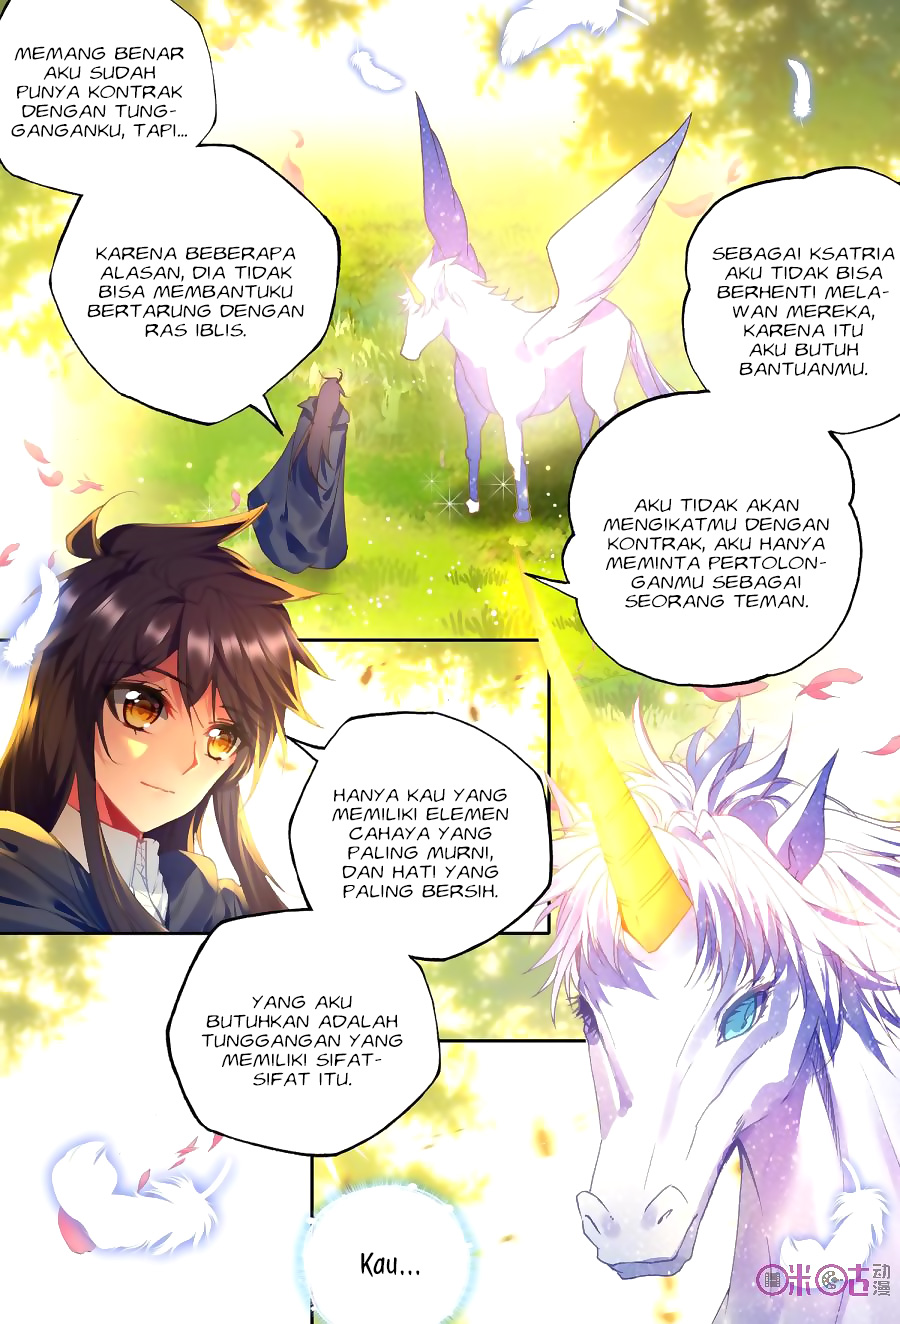 Komik shen yin wang zuo 152 - chapter 152 153 Indonesia shen yin wang zuo 152 - chapter 152 Terbaru 6|Baca Manga Komik Indonesia